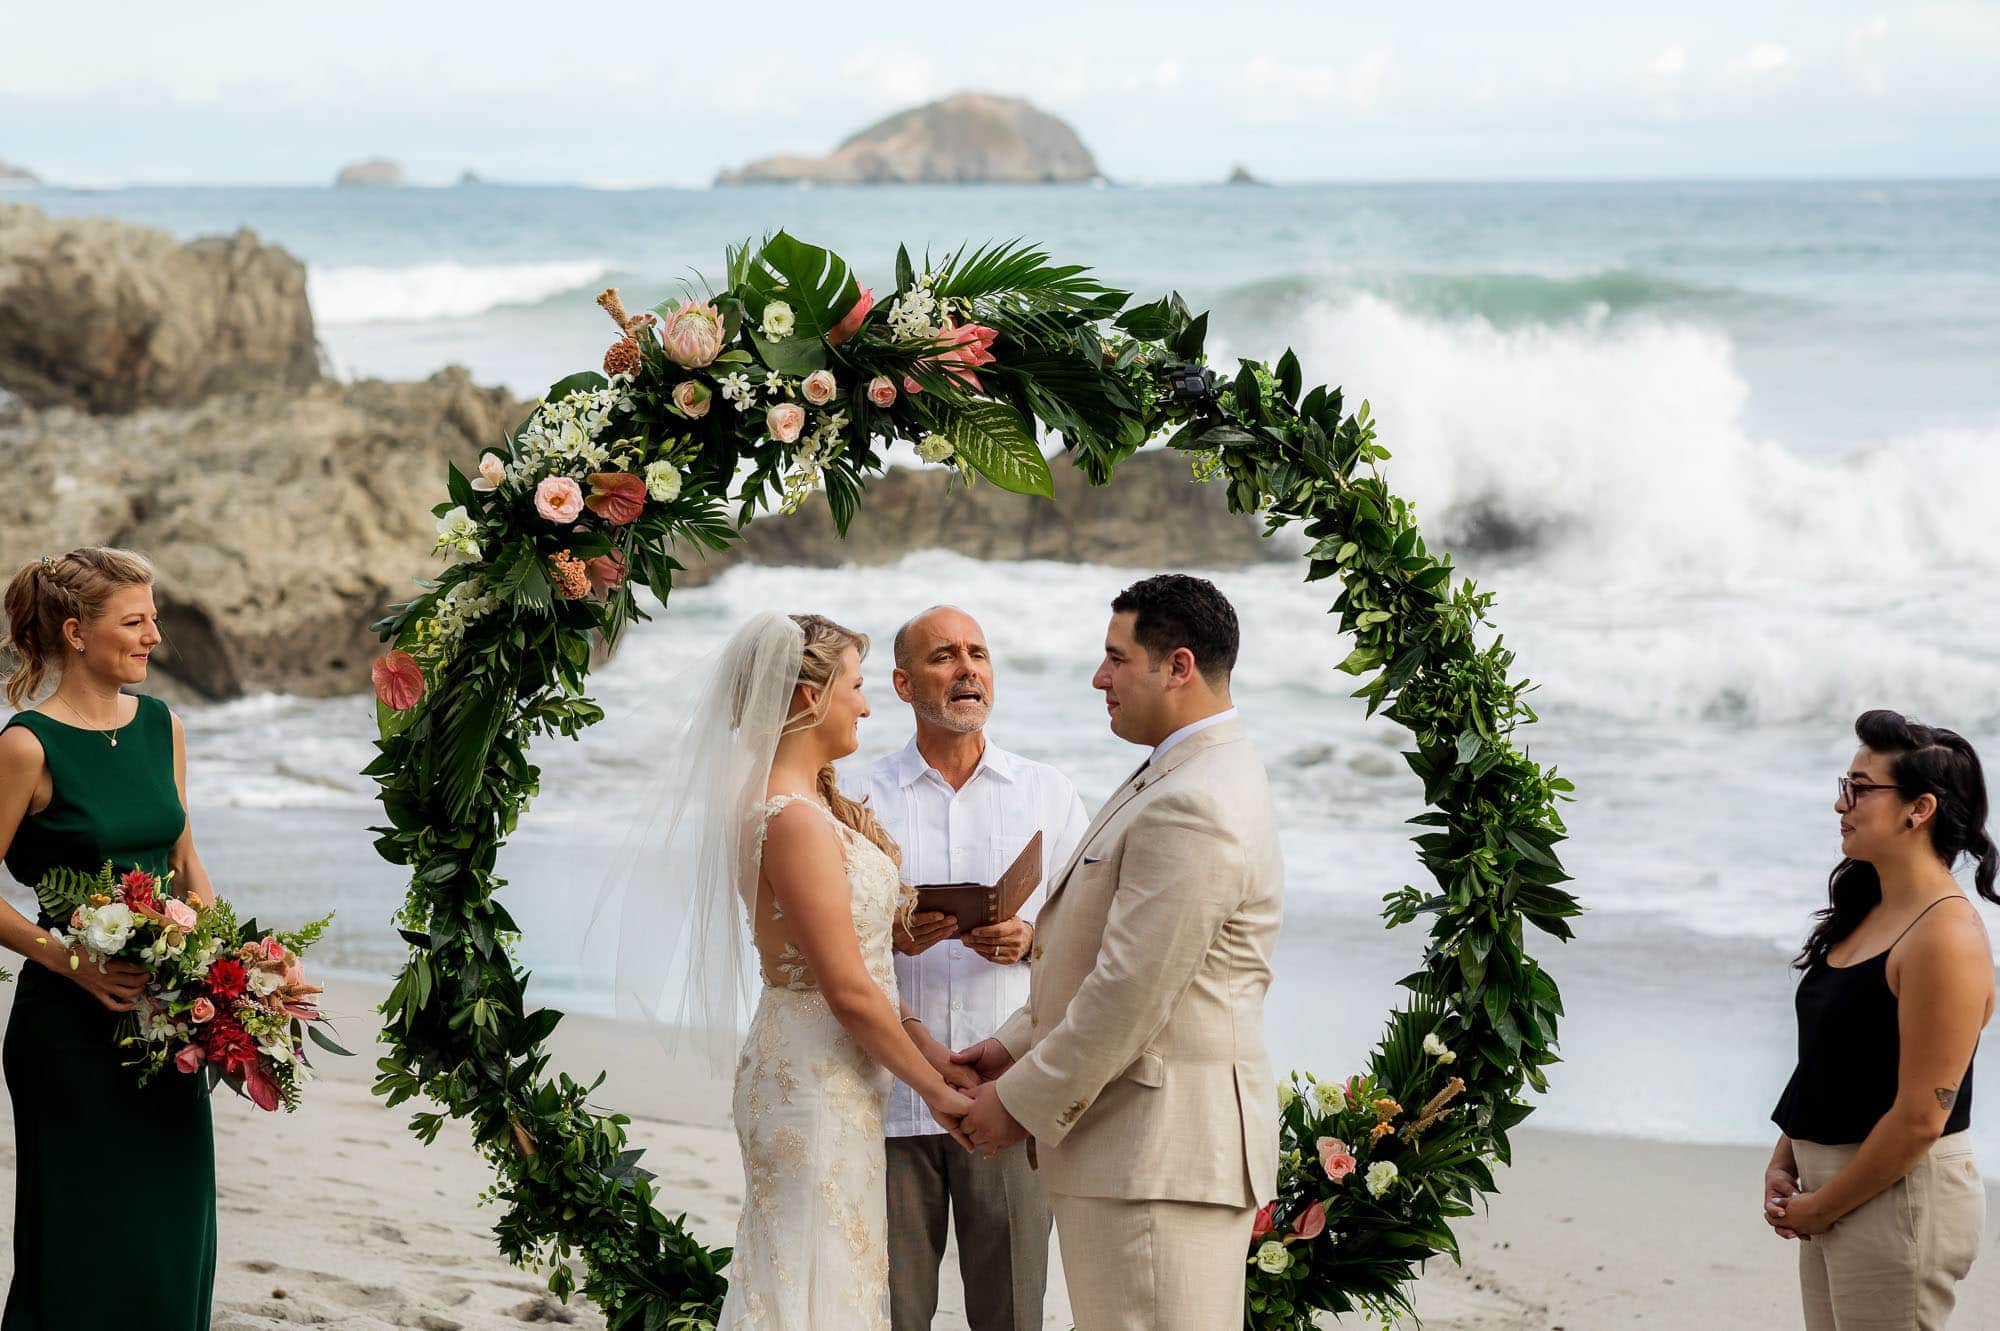 Ceremony shot - check out those waves!